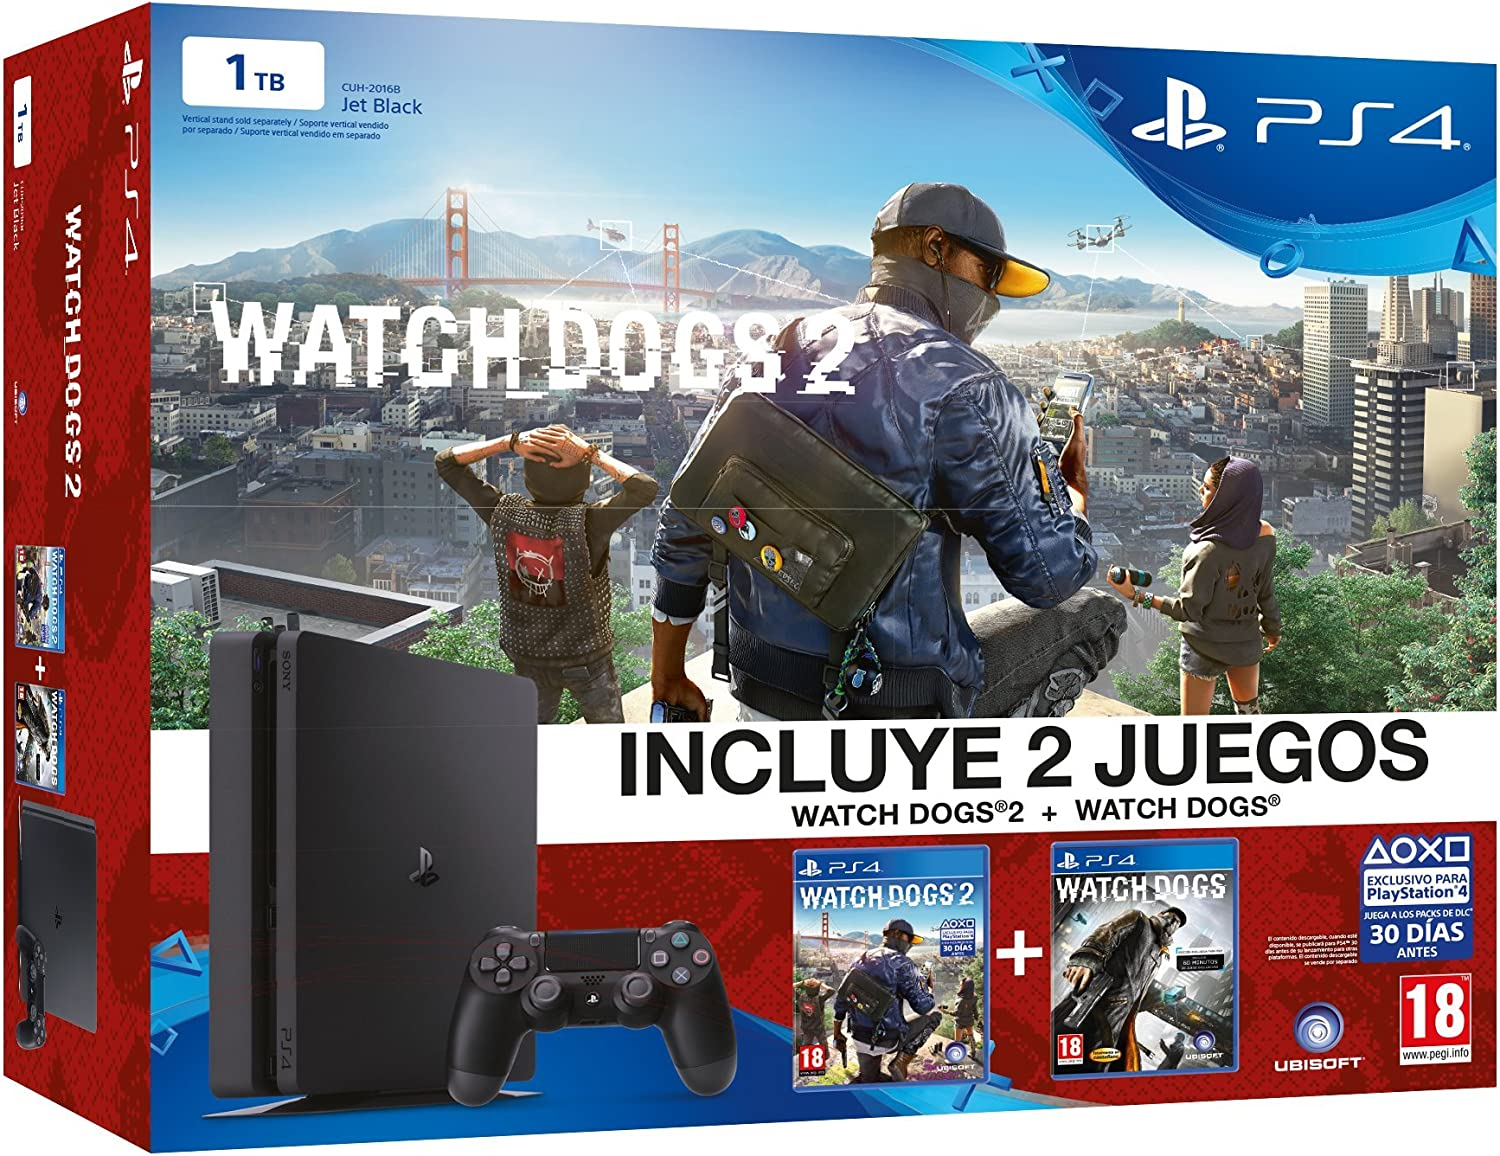 PlayStation 4 Slim (PS4) 1TB - Consola + Watch Dogs 2 + Watch Dogs ...